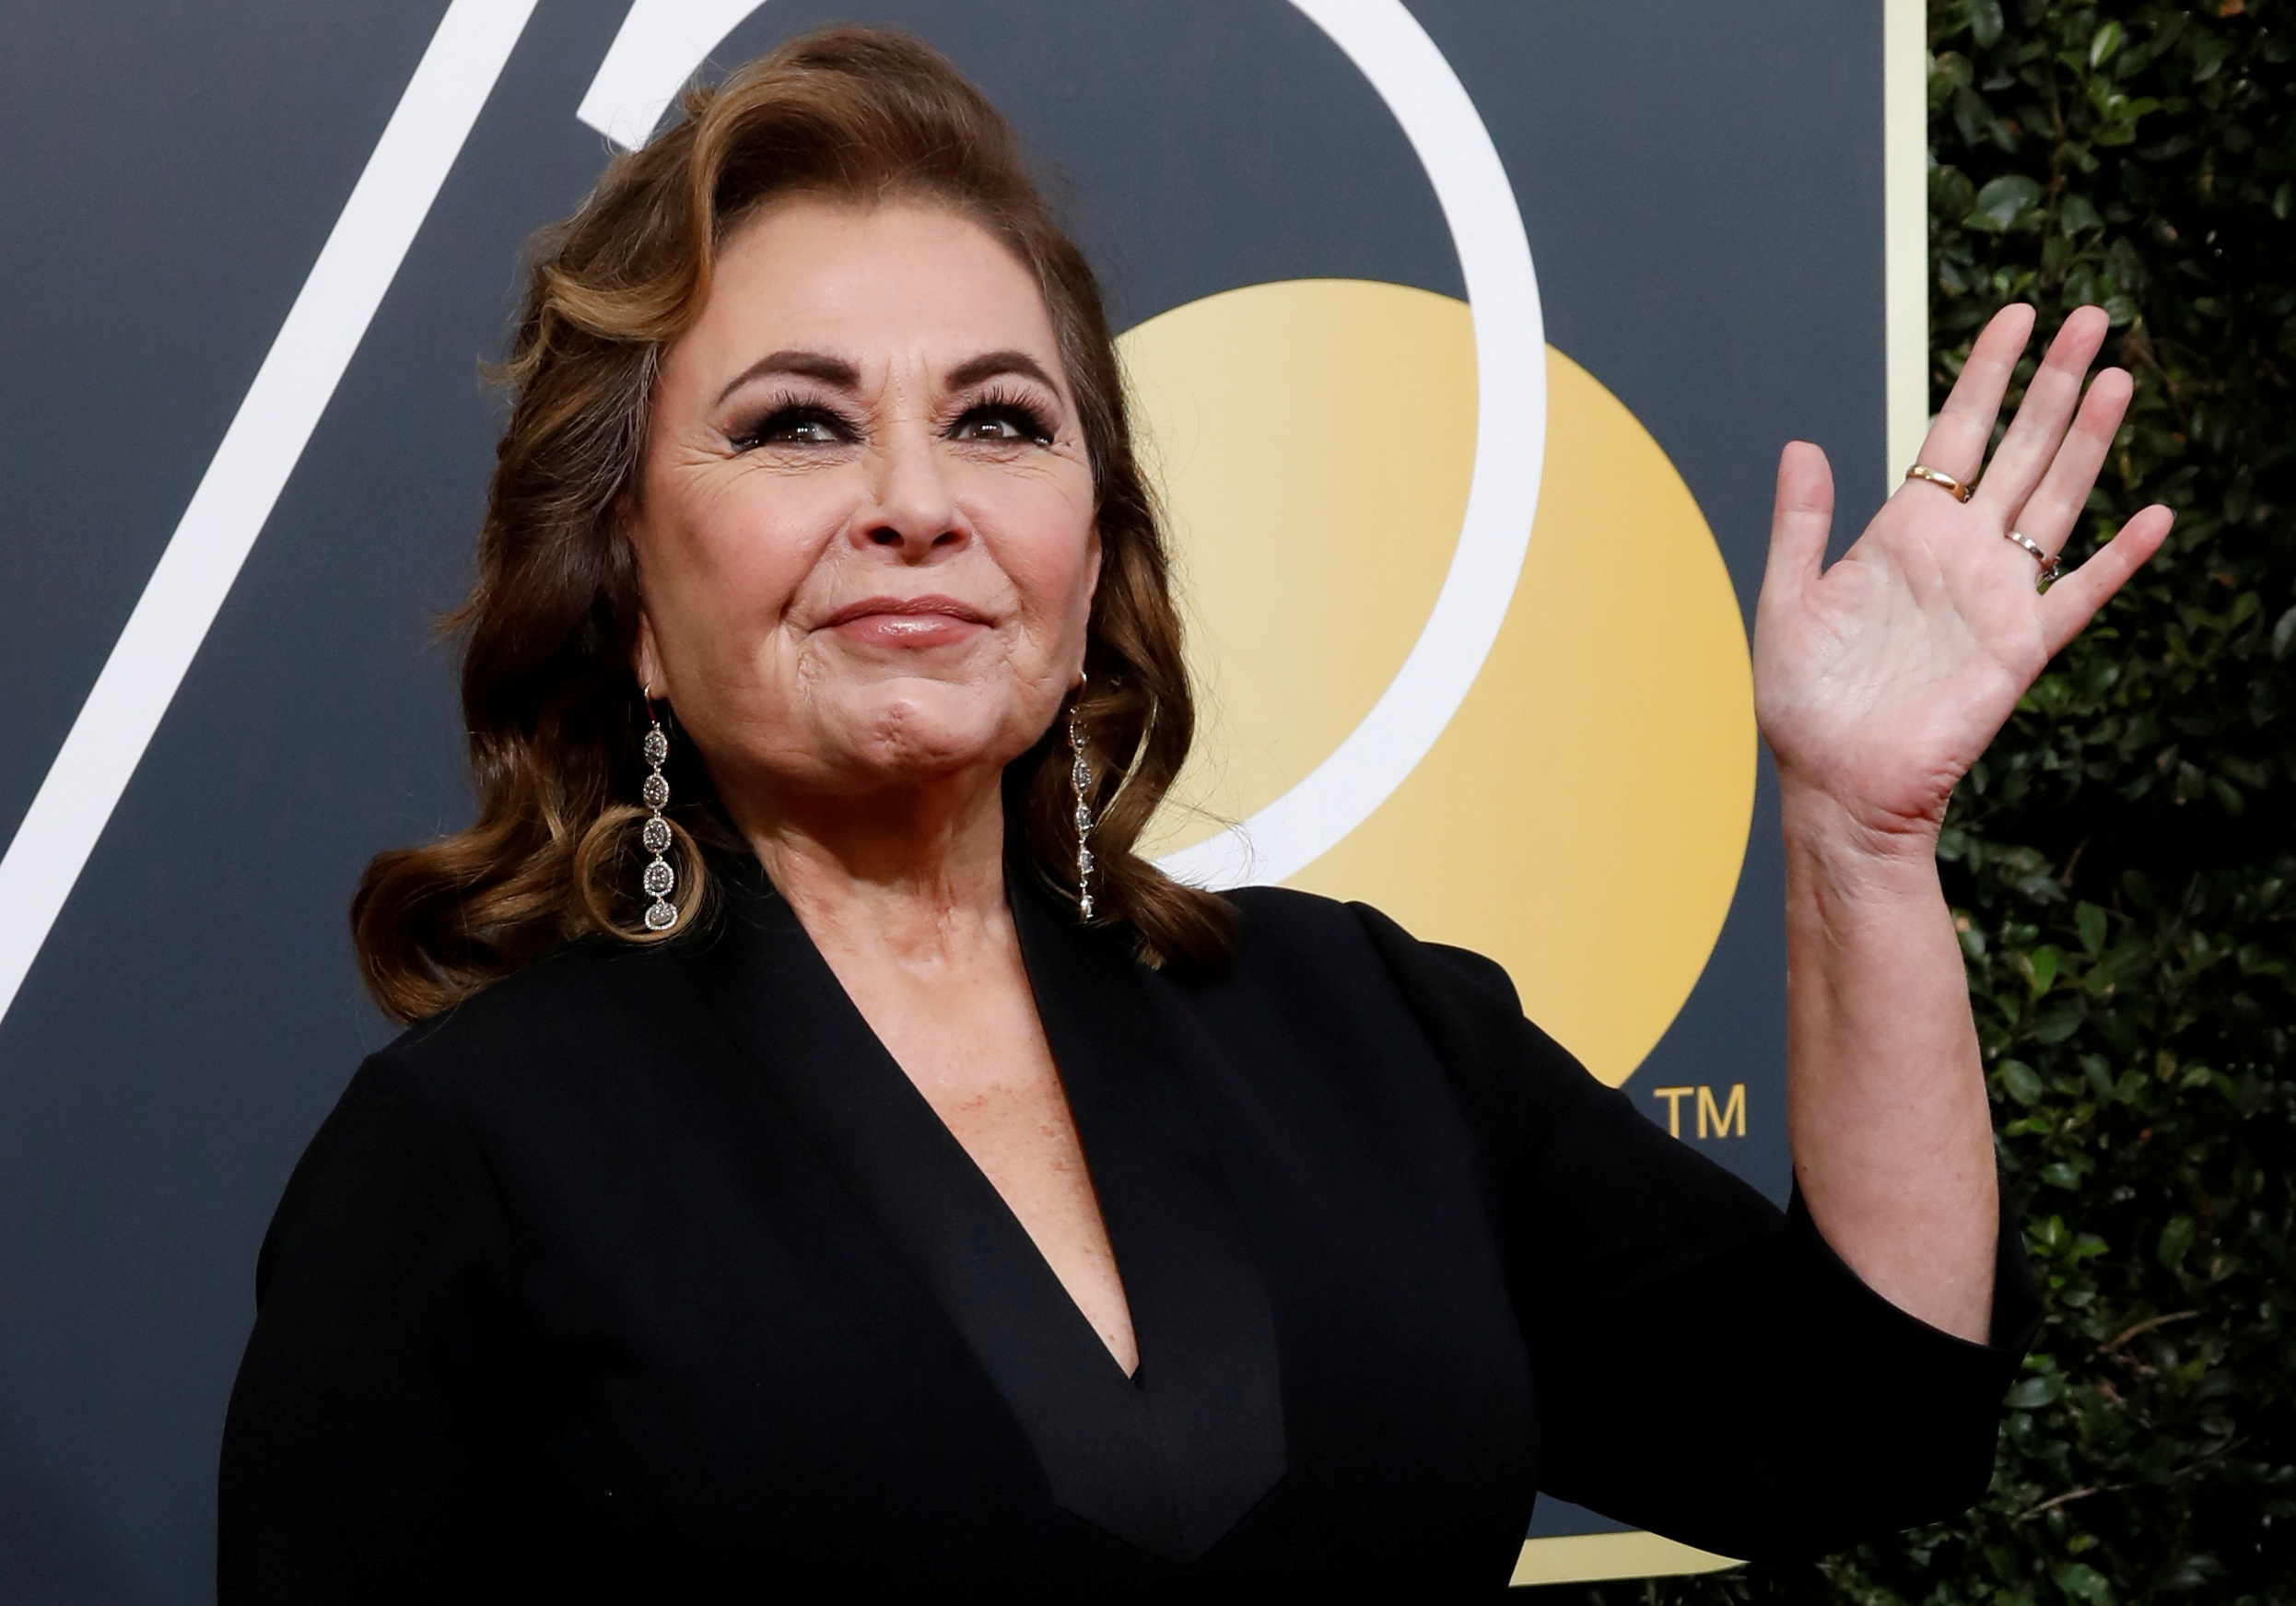 Actress Roseanne Barr waves on her arrival to the 75th Golden Globe Awards in Beverly Hills, Calif.,  on Jan. 7, 2018.